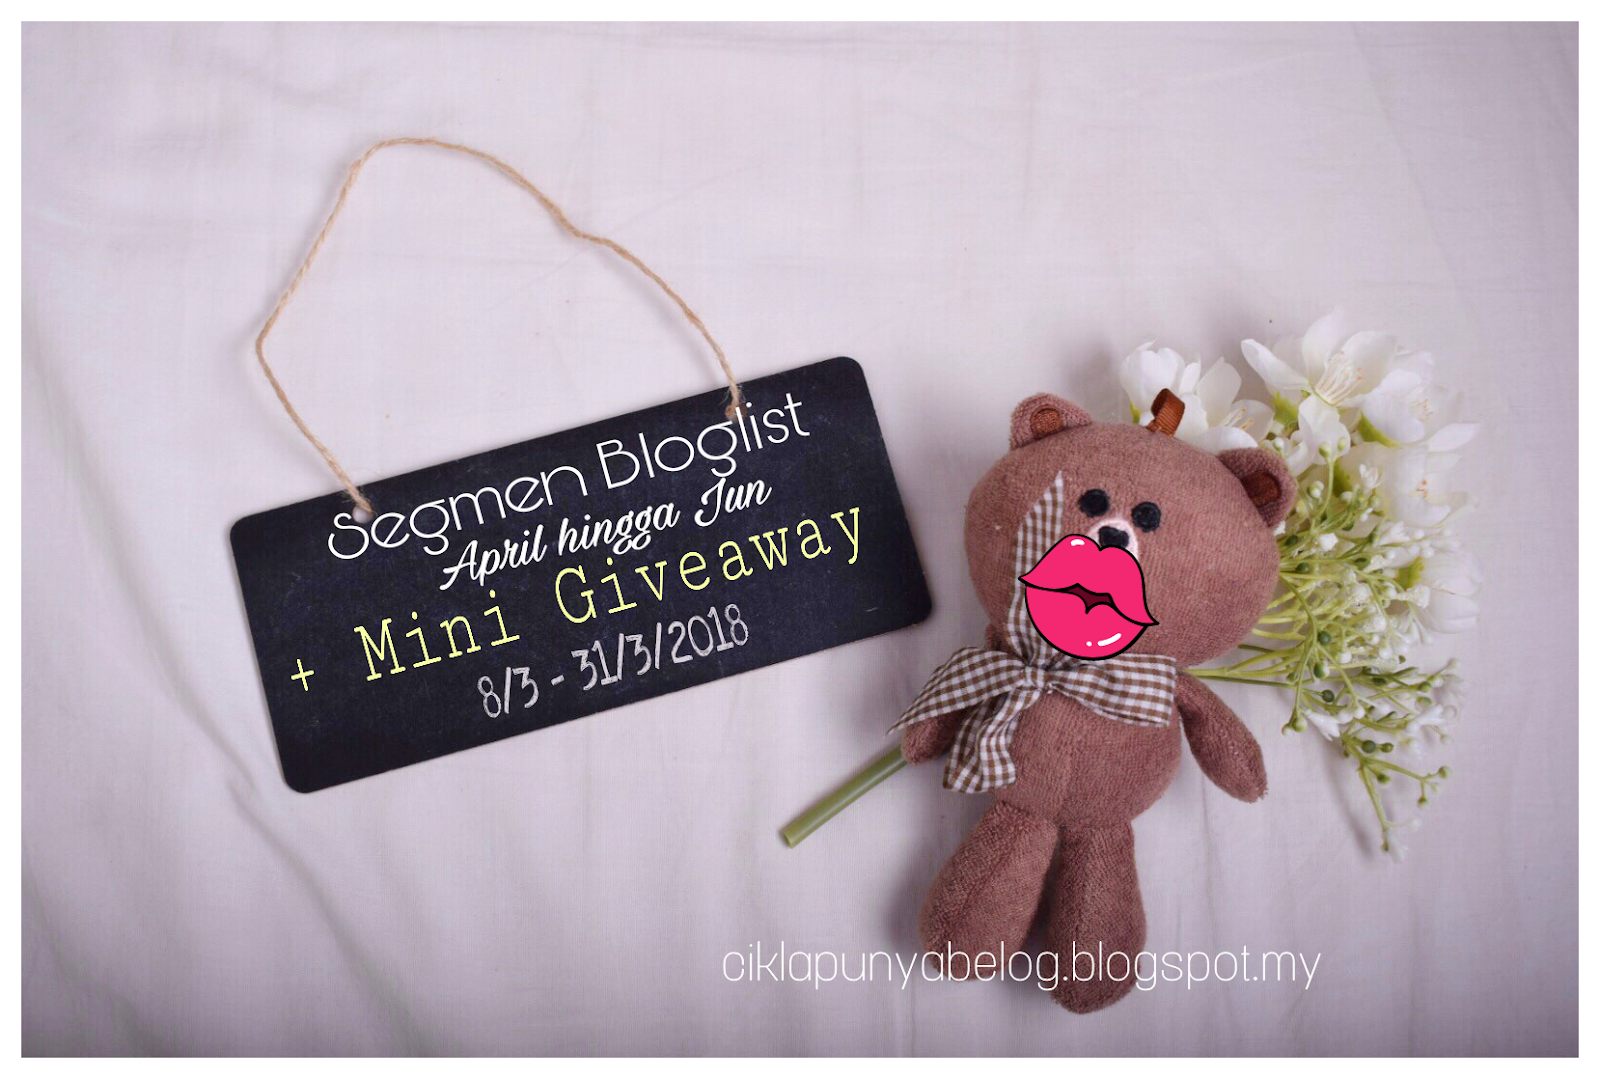 Segmen Bloglist April hingga Jun + Mini Giveaway.